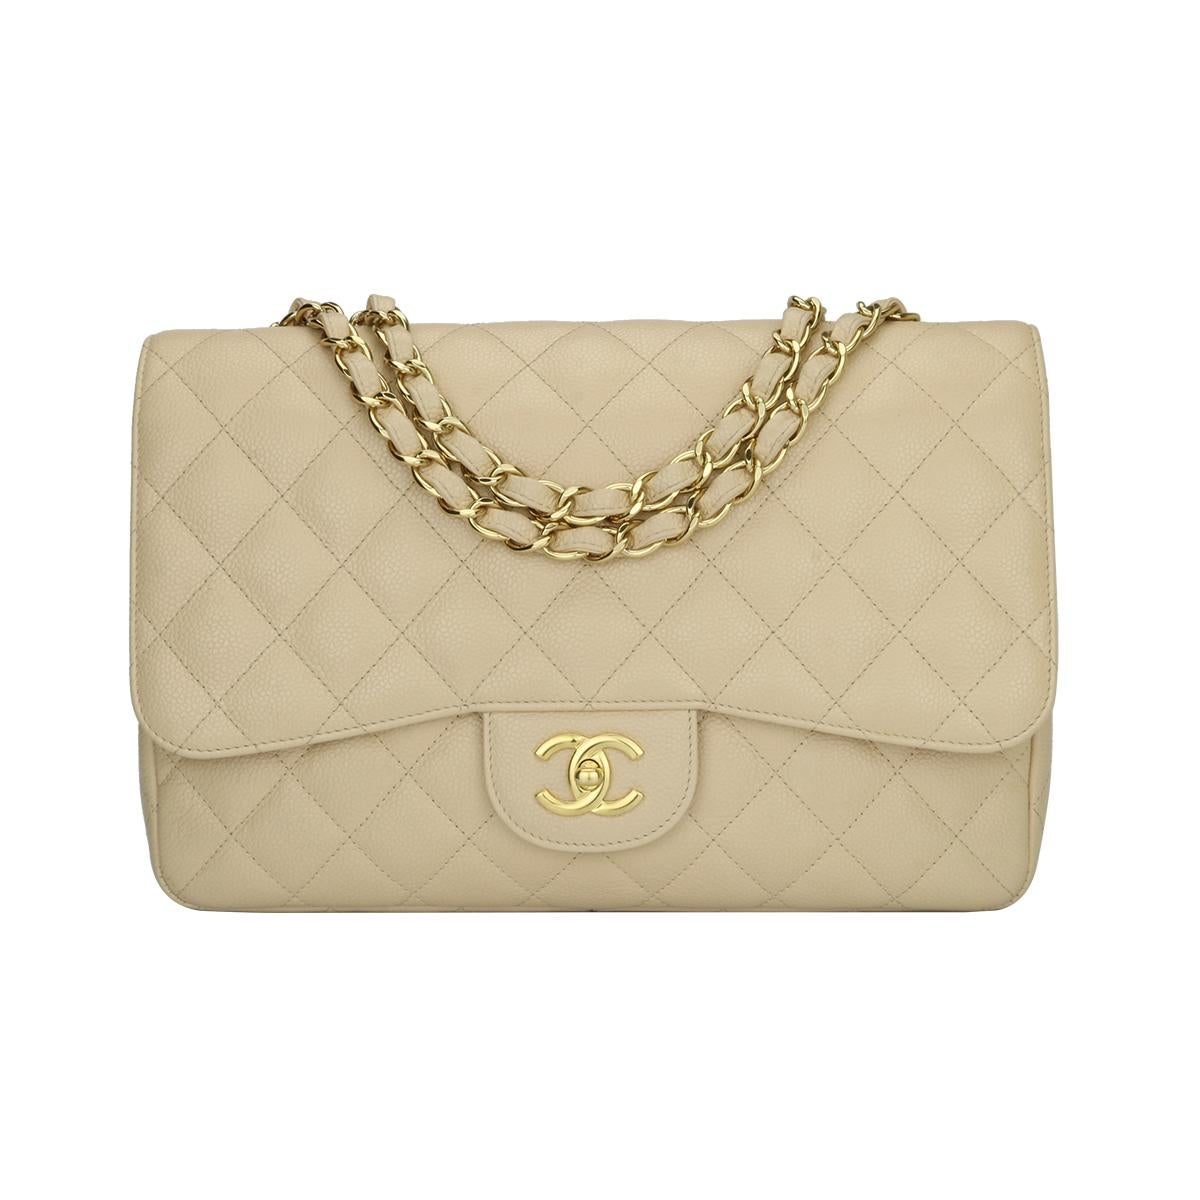 46f6f6de61e5 CHANEL Crossbody Bag in Pearly Gray Duchess Satin. For Sale at 1stdibs